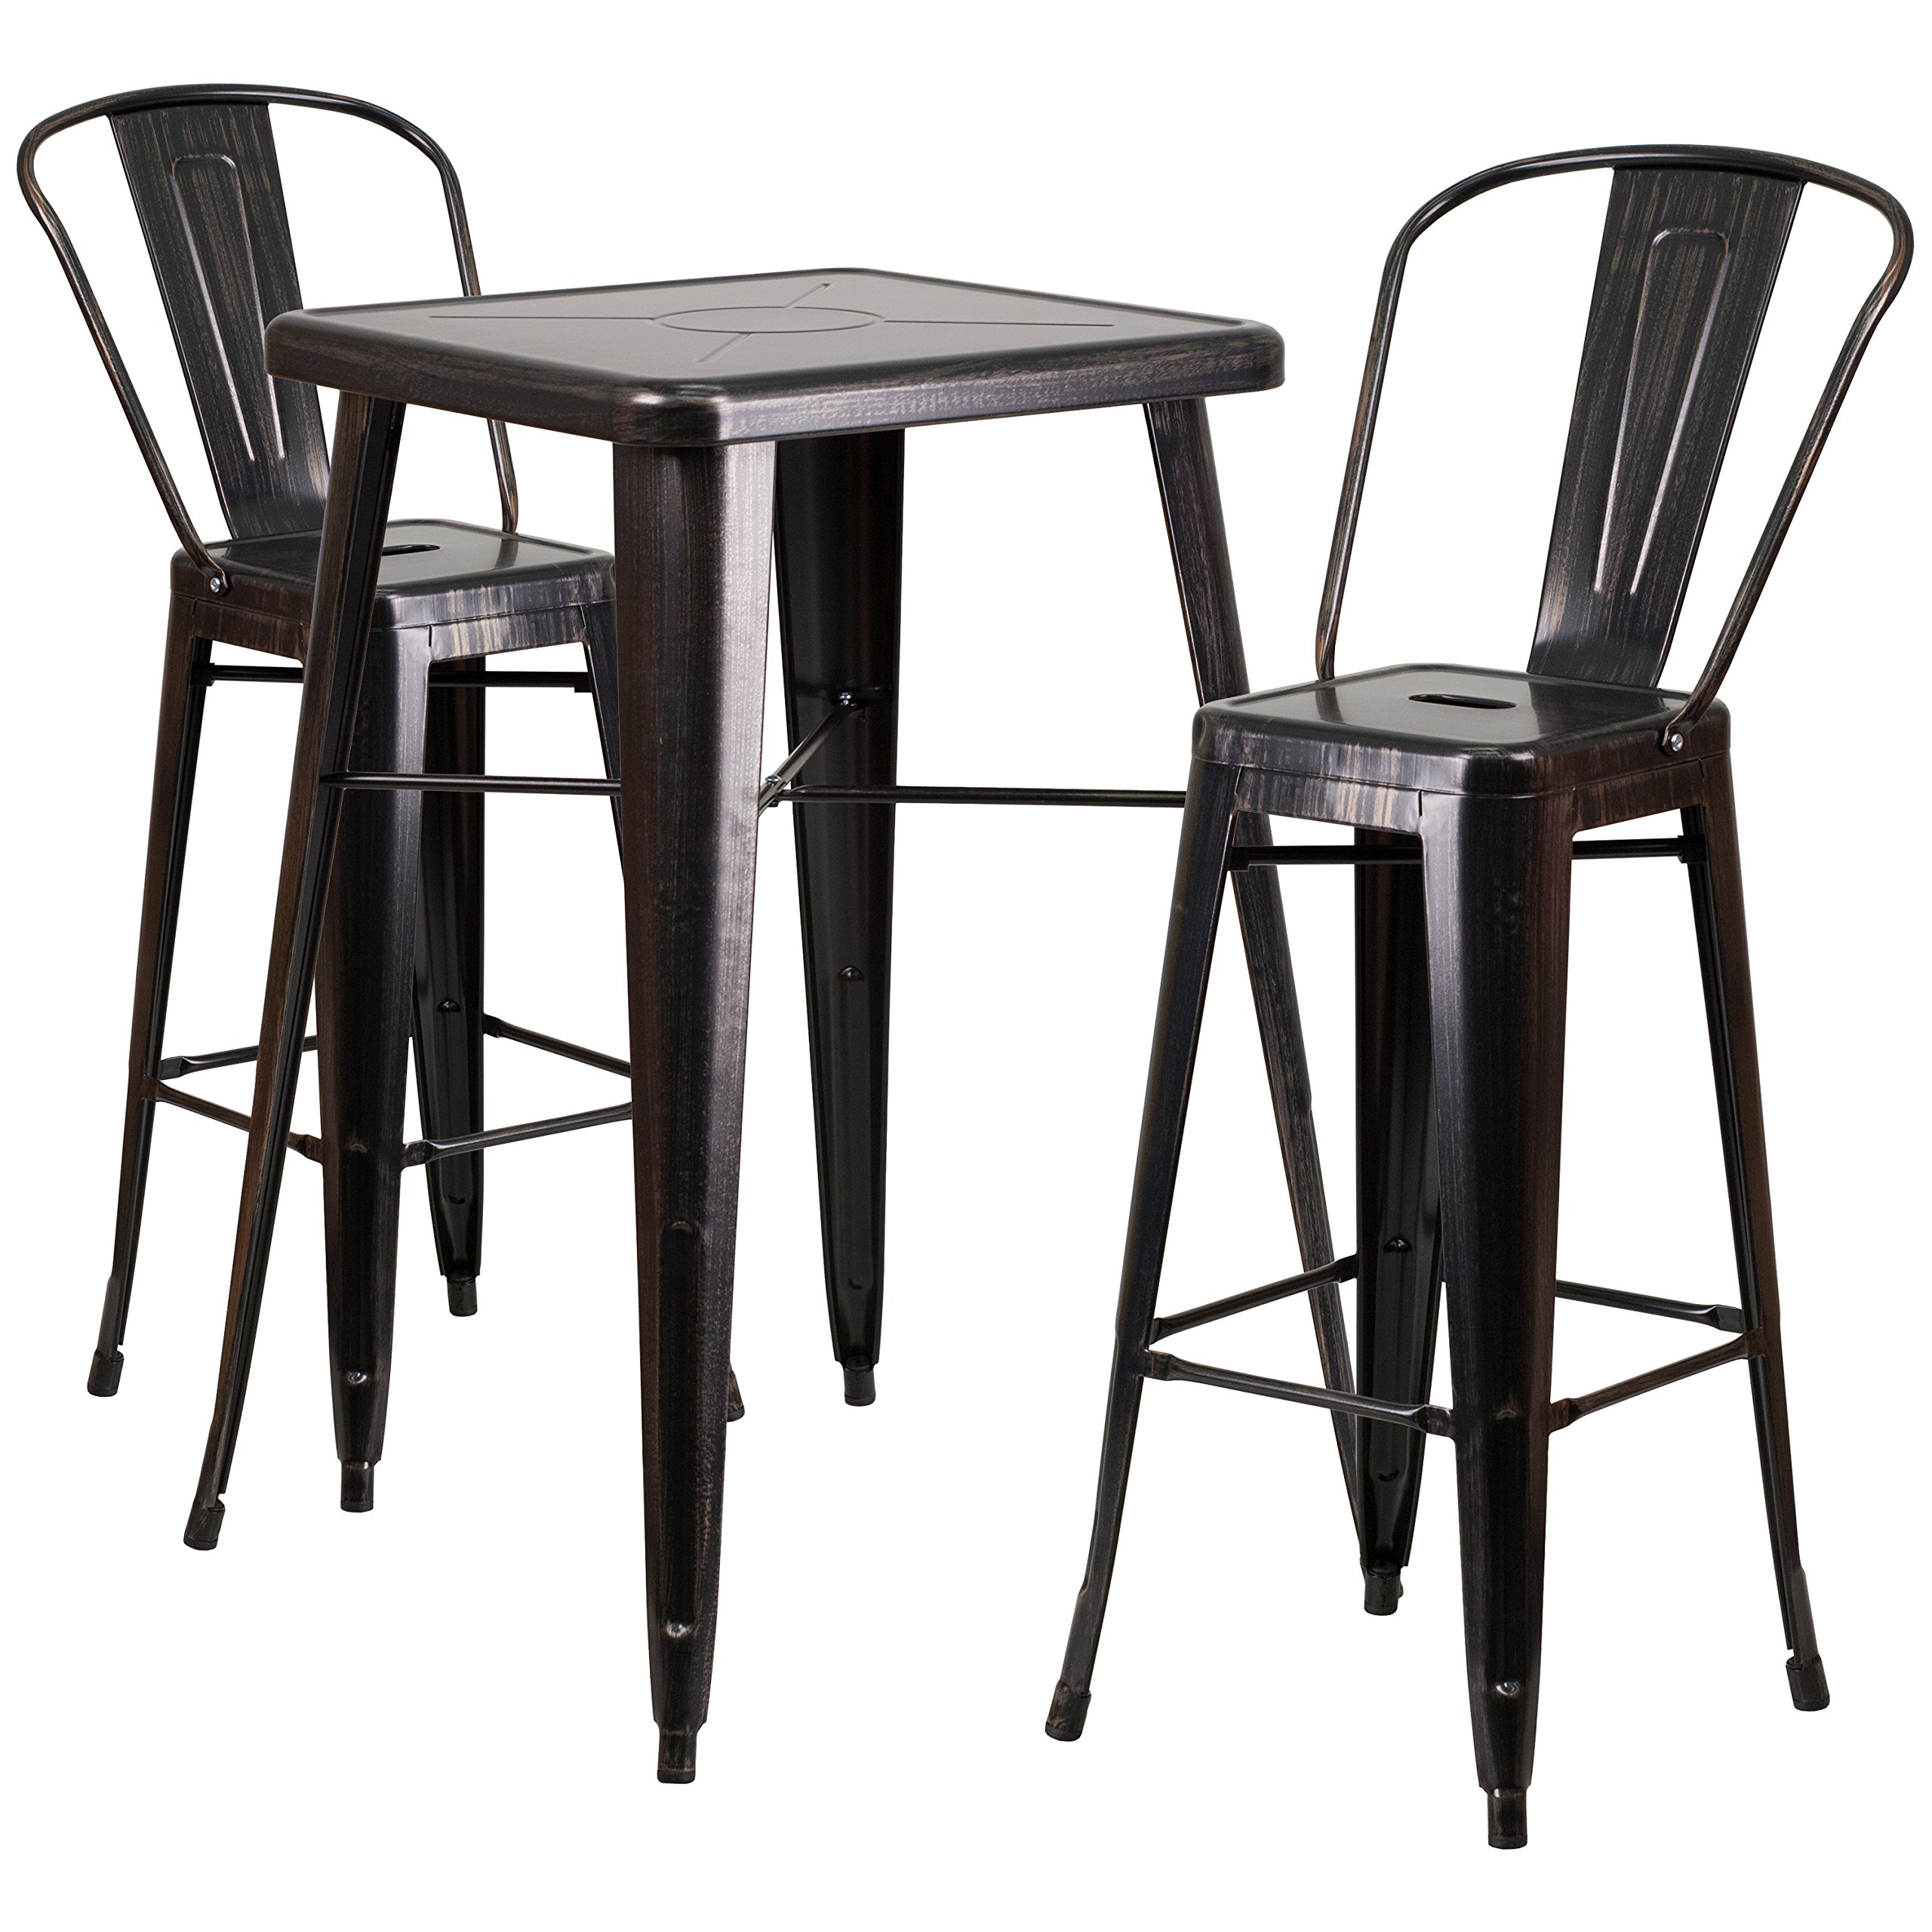 Flash Furniture 23.75'' Square Black-Antique Gold Metal Indoor-Outdoor Bar Table Set with 2 Stools with Backs